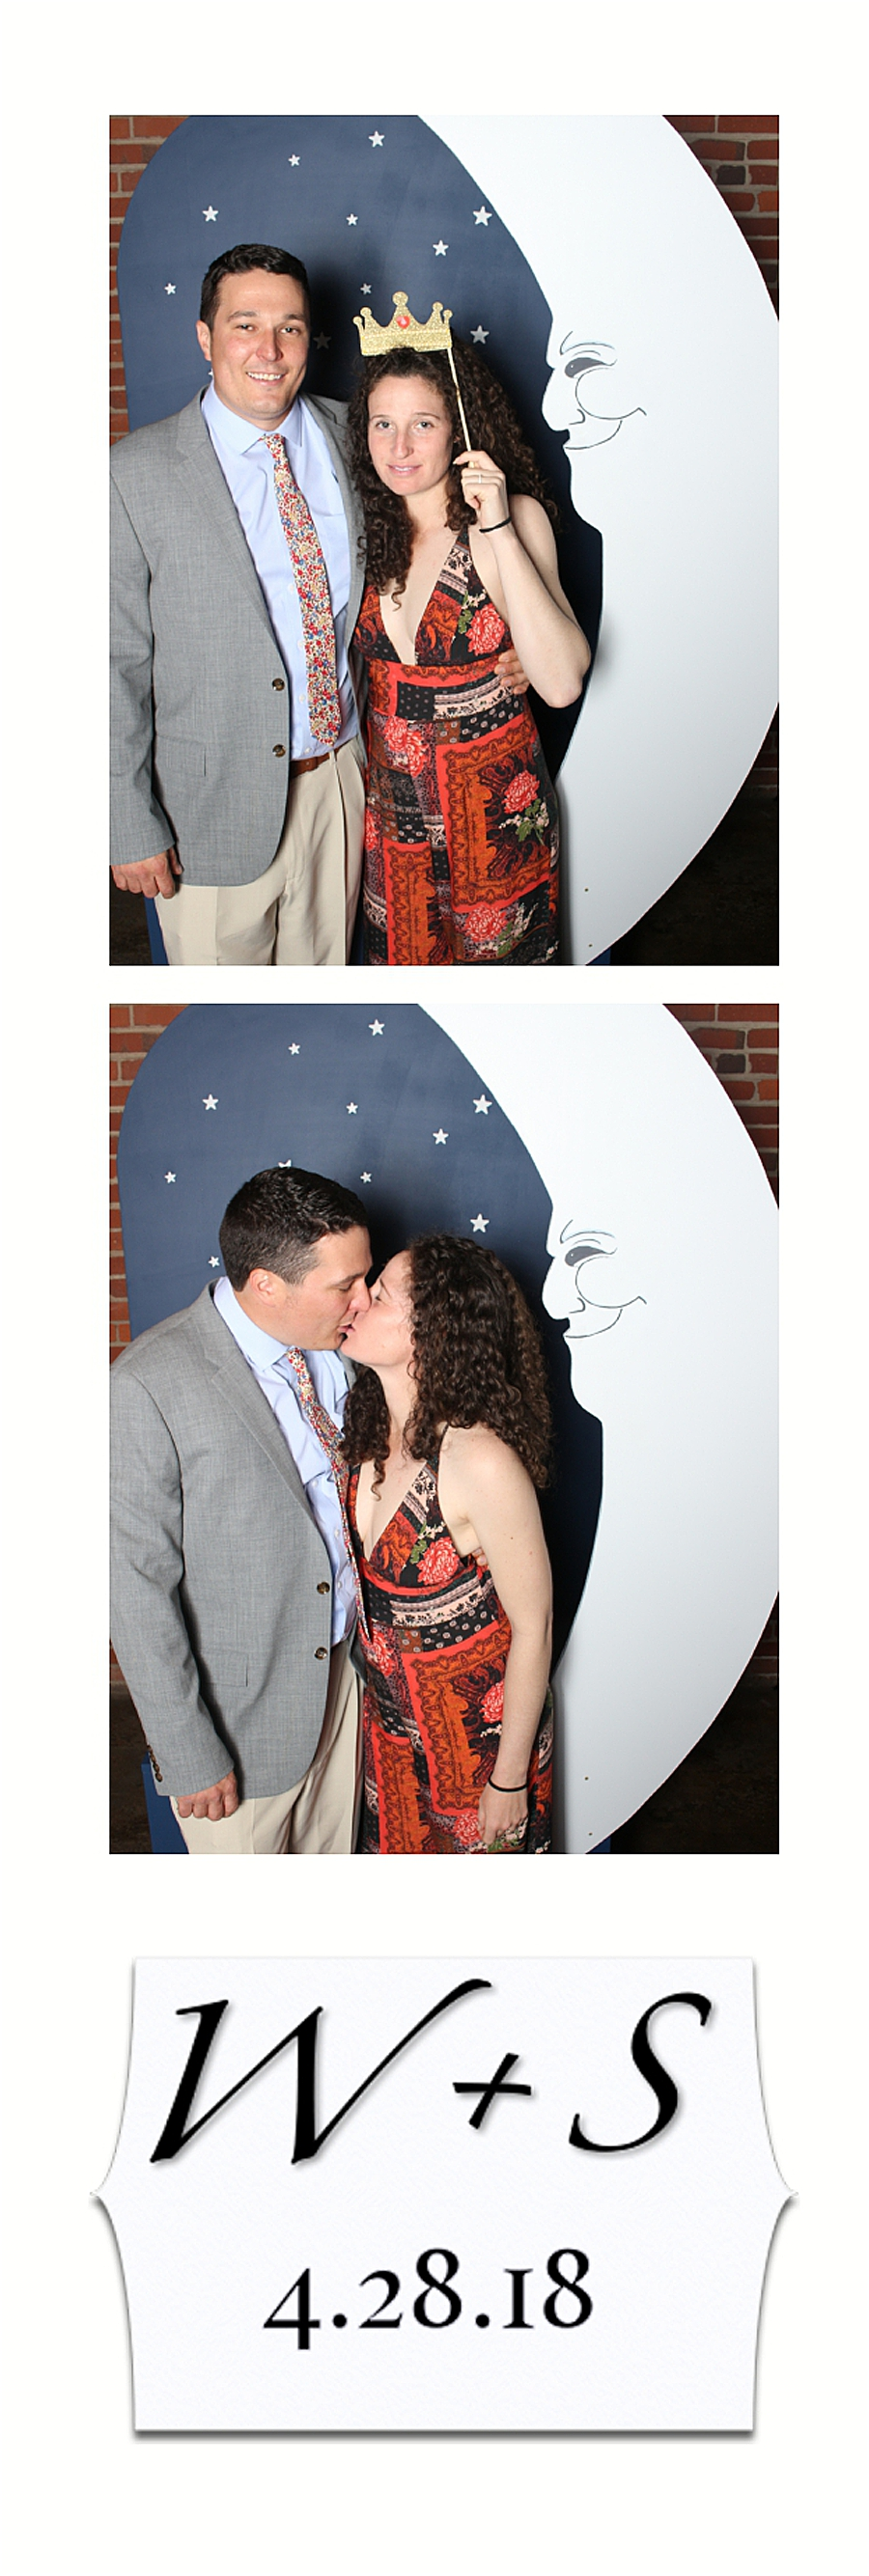 Knoxville Photo Booth_1713.jpg